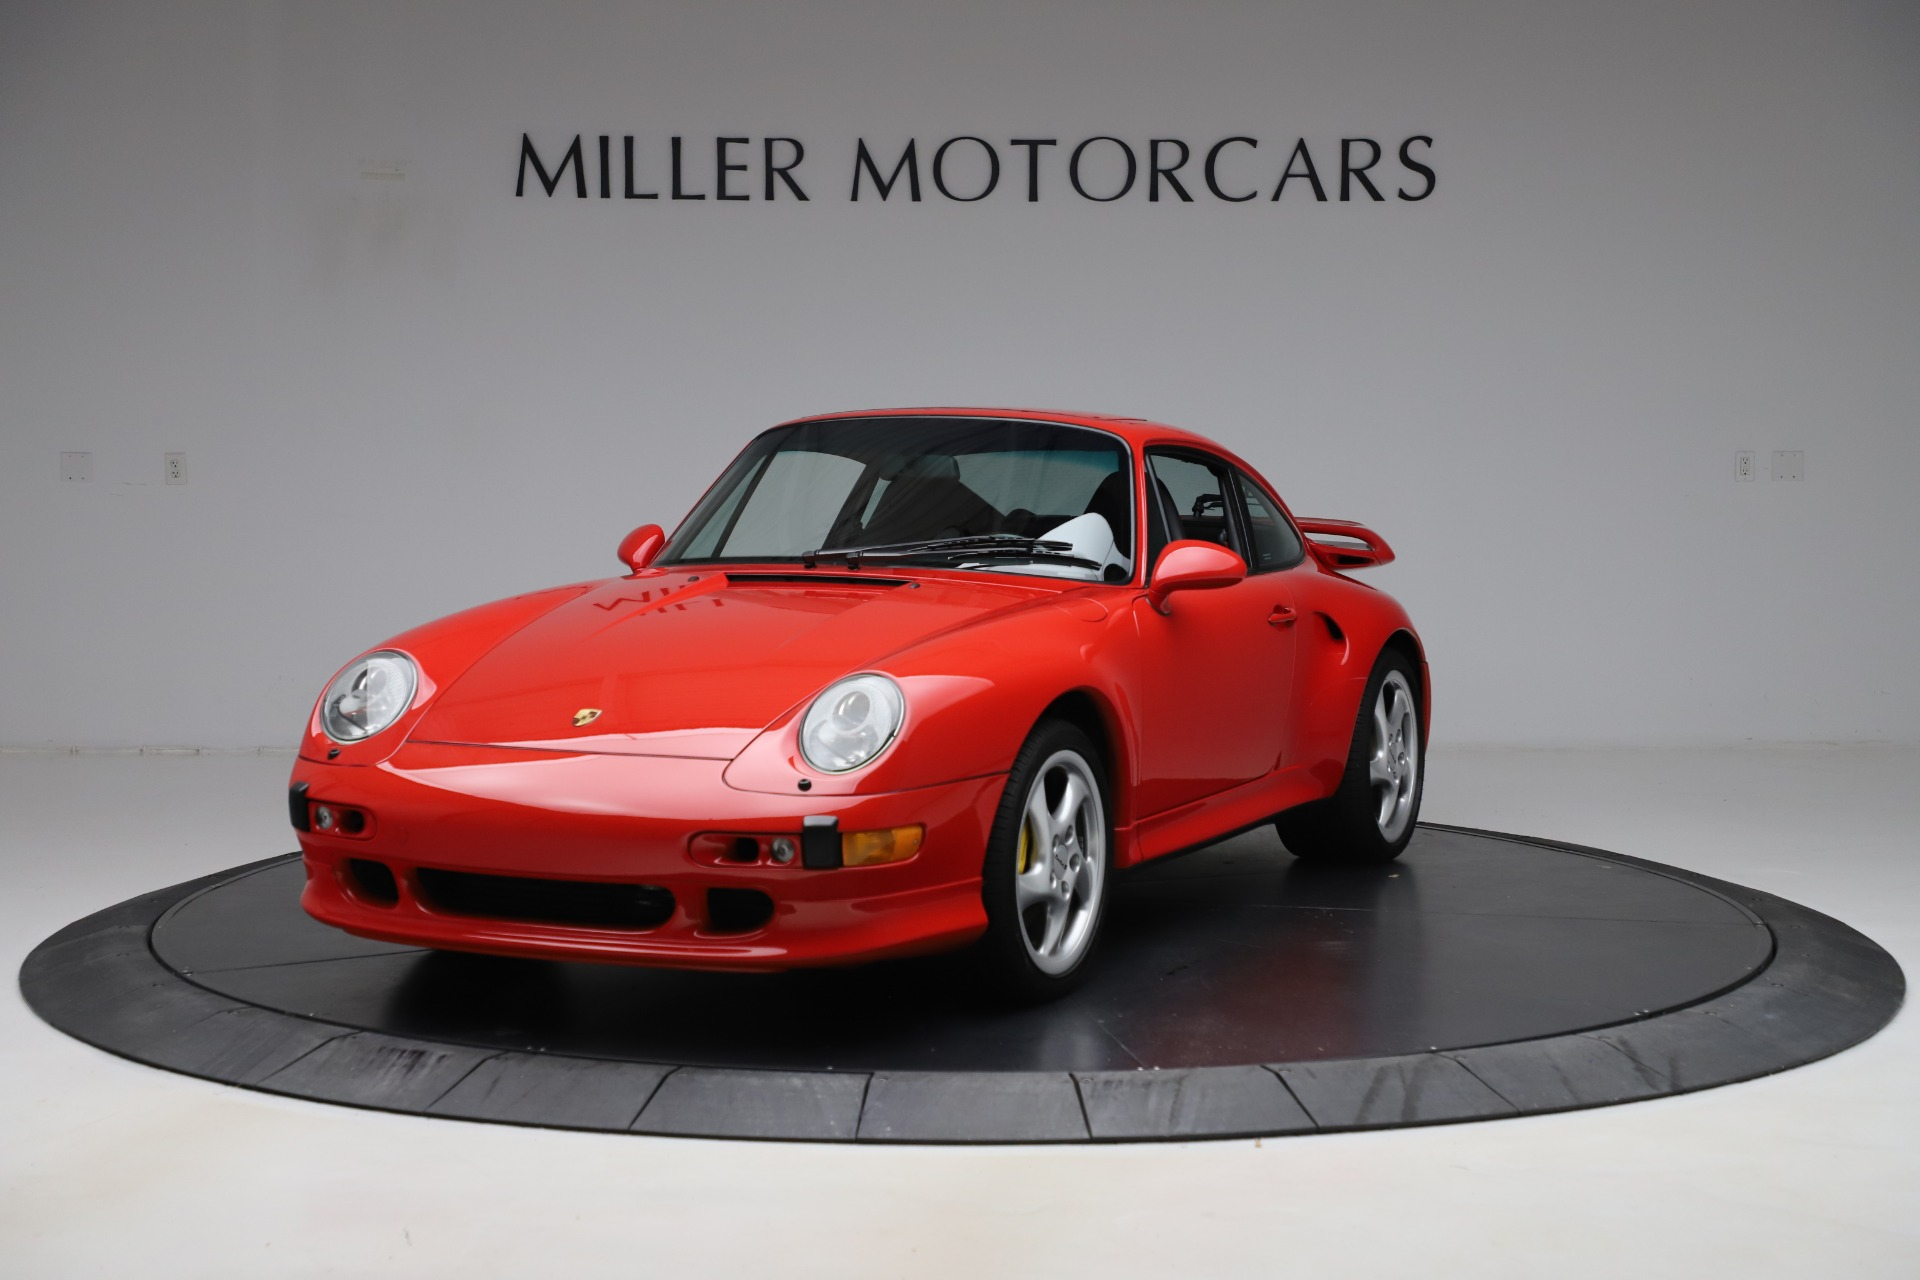 Used 1997 Porsche 911 Turbo S for sale $419,900 at Alfa Romeo of Greenwich in Greenwich CT 06830 1